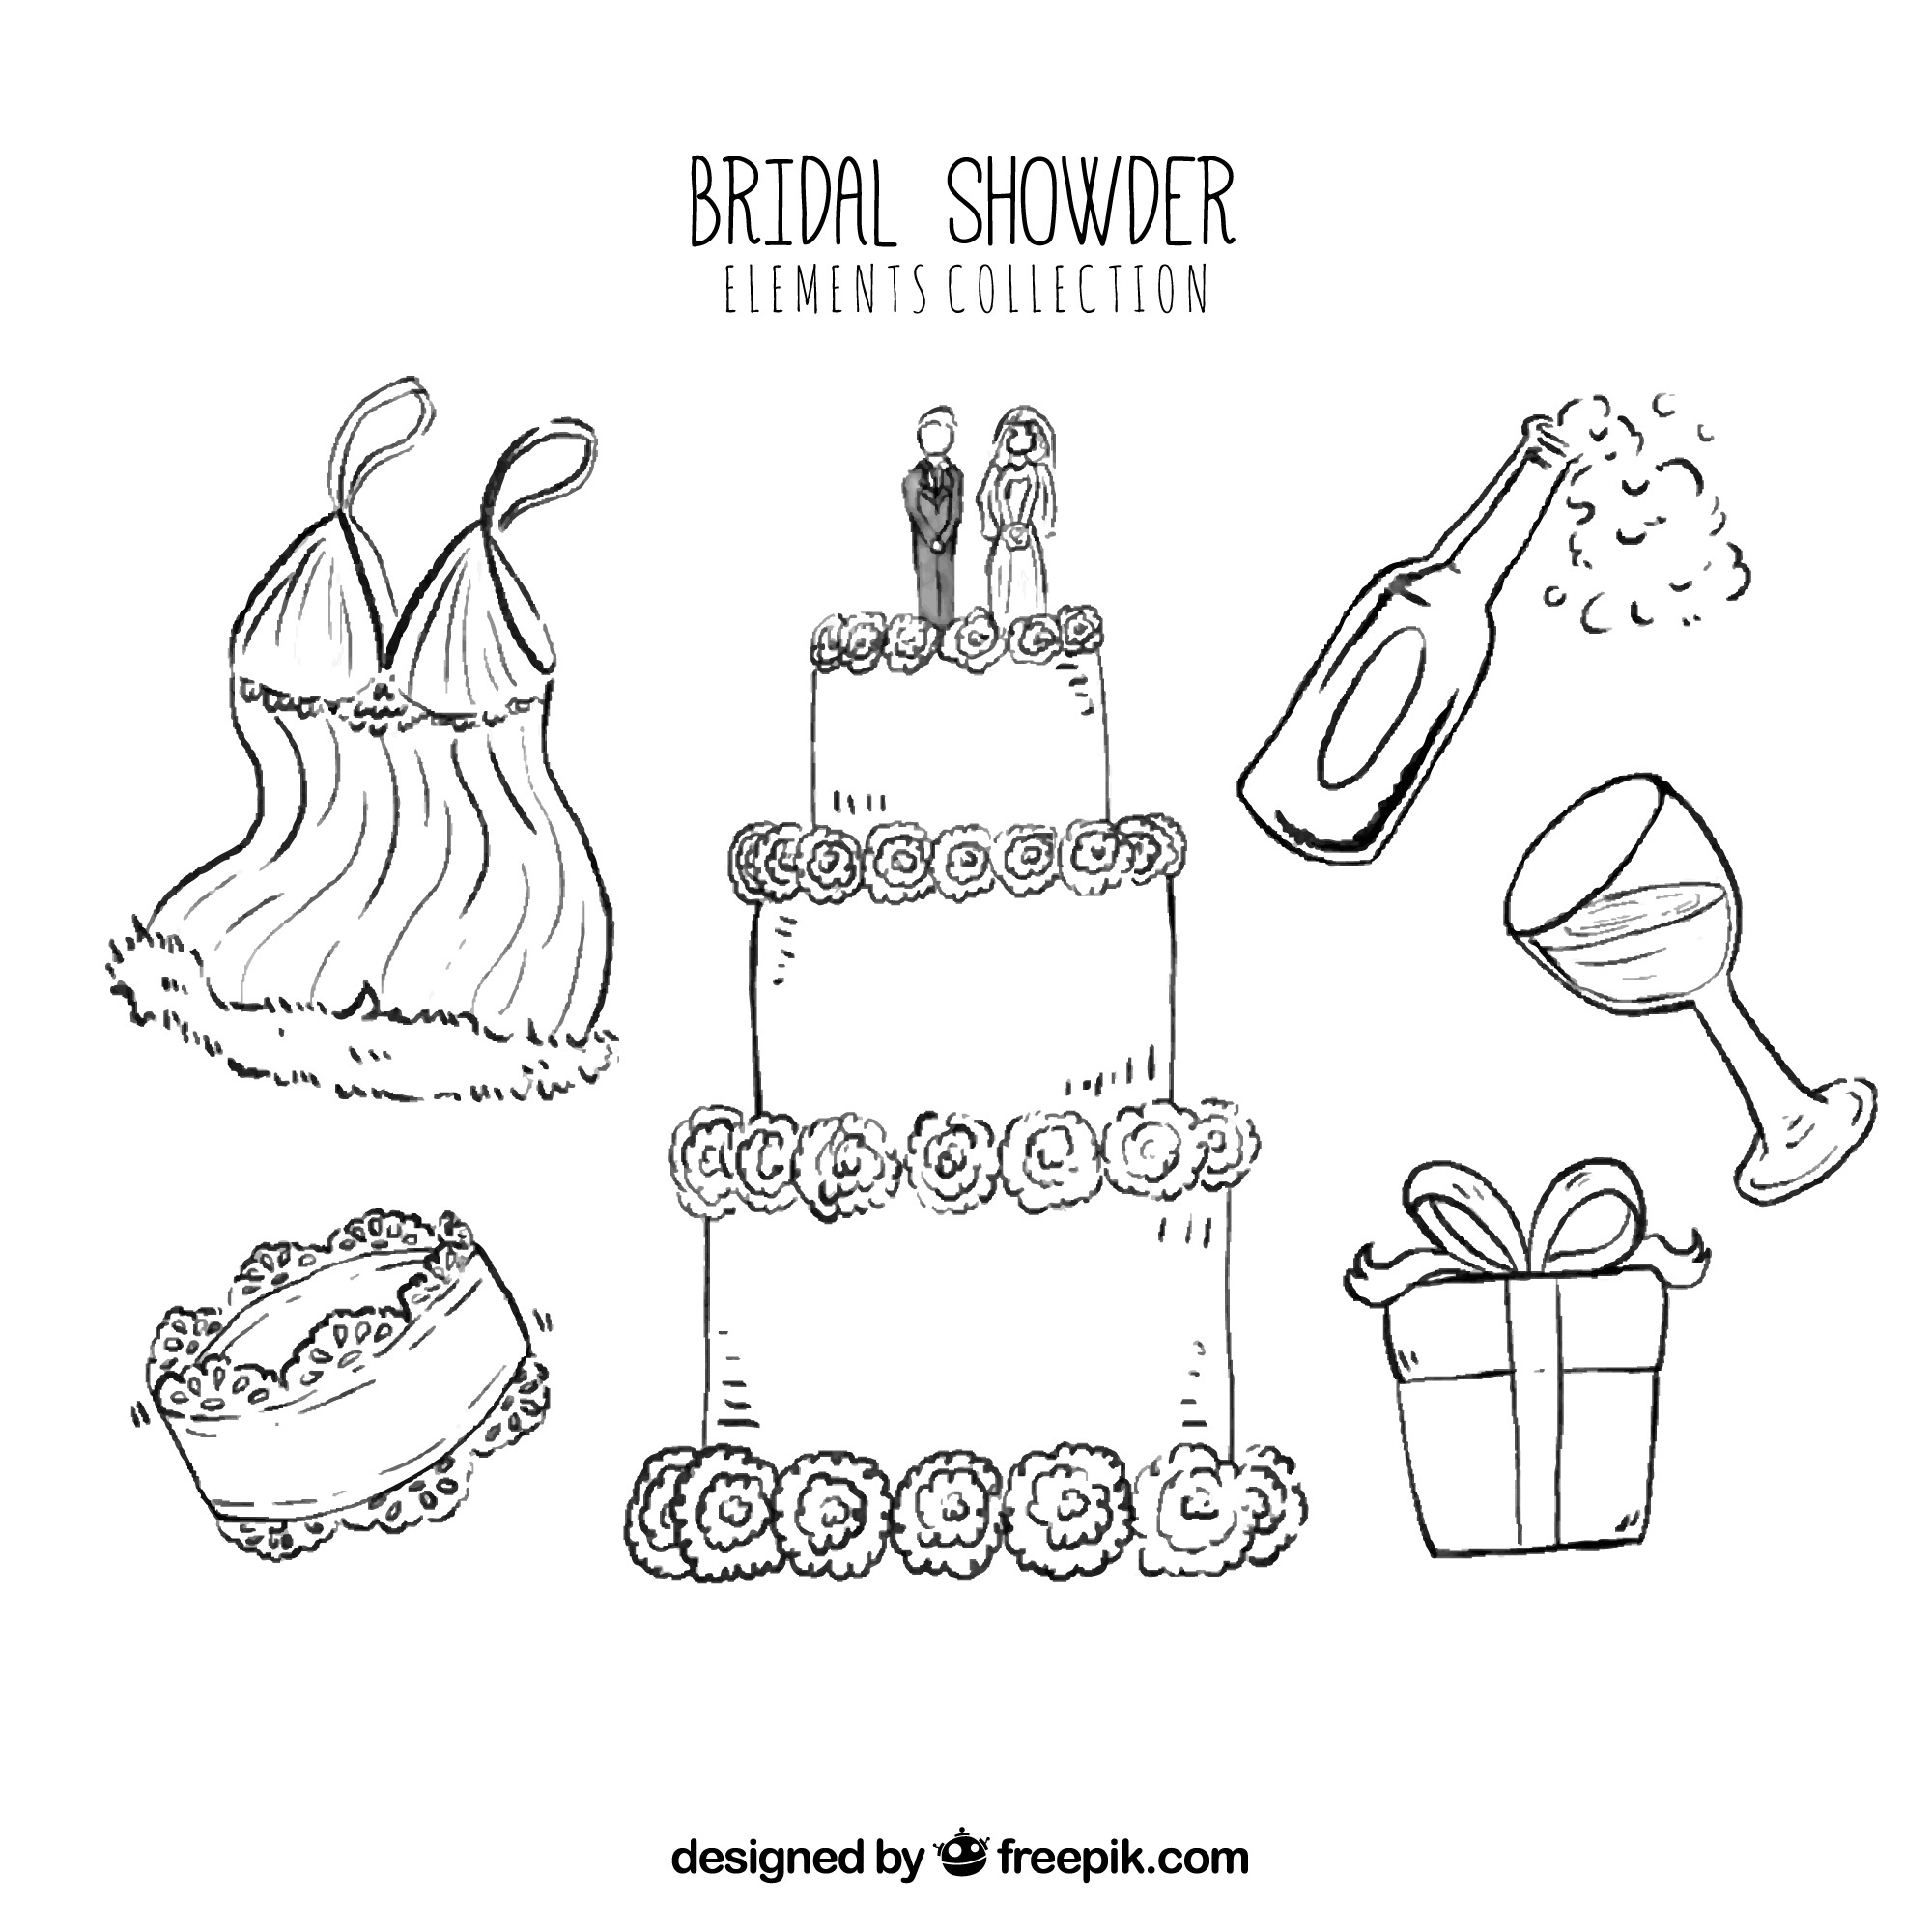 Pack of bridal shower elements in hand-drawn style